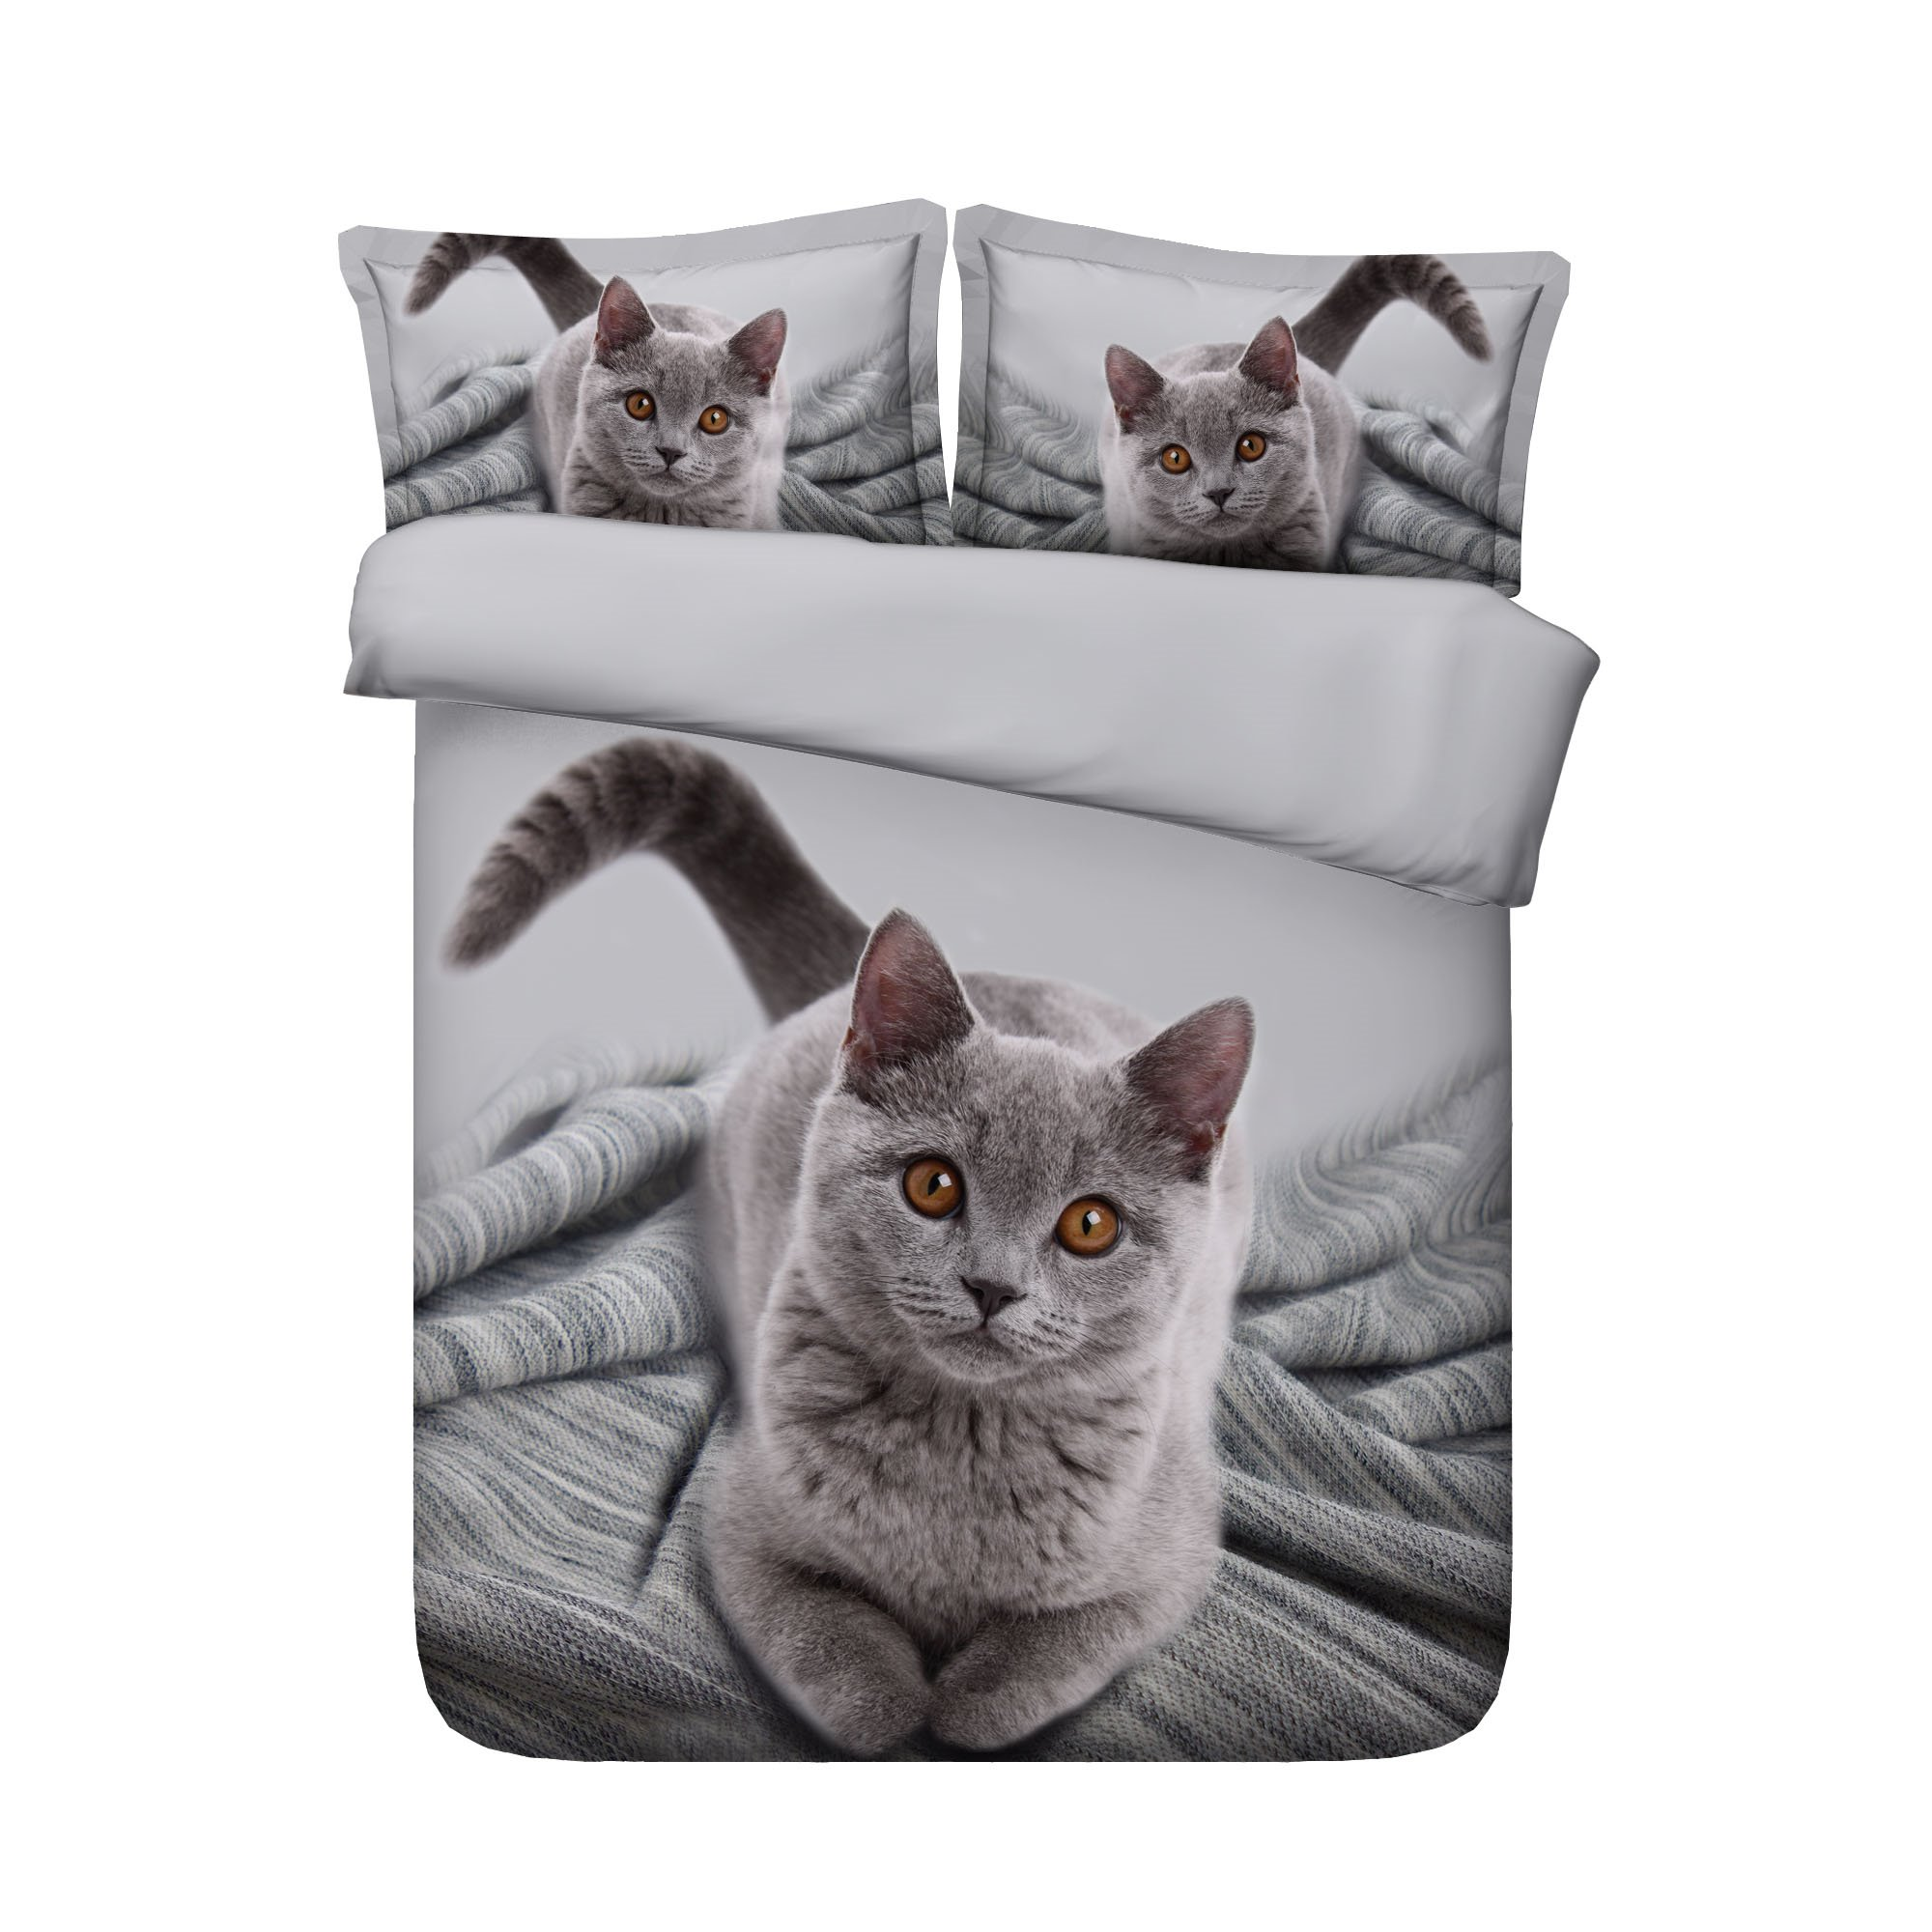 Cute Grey Kitty Cat Printed 4-Piece 3D Bedding Sets/Duvet Covers